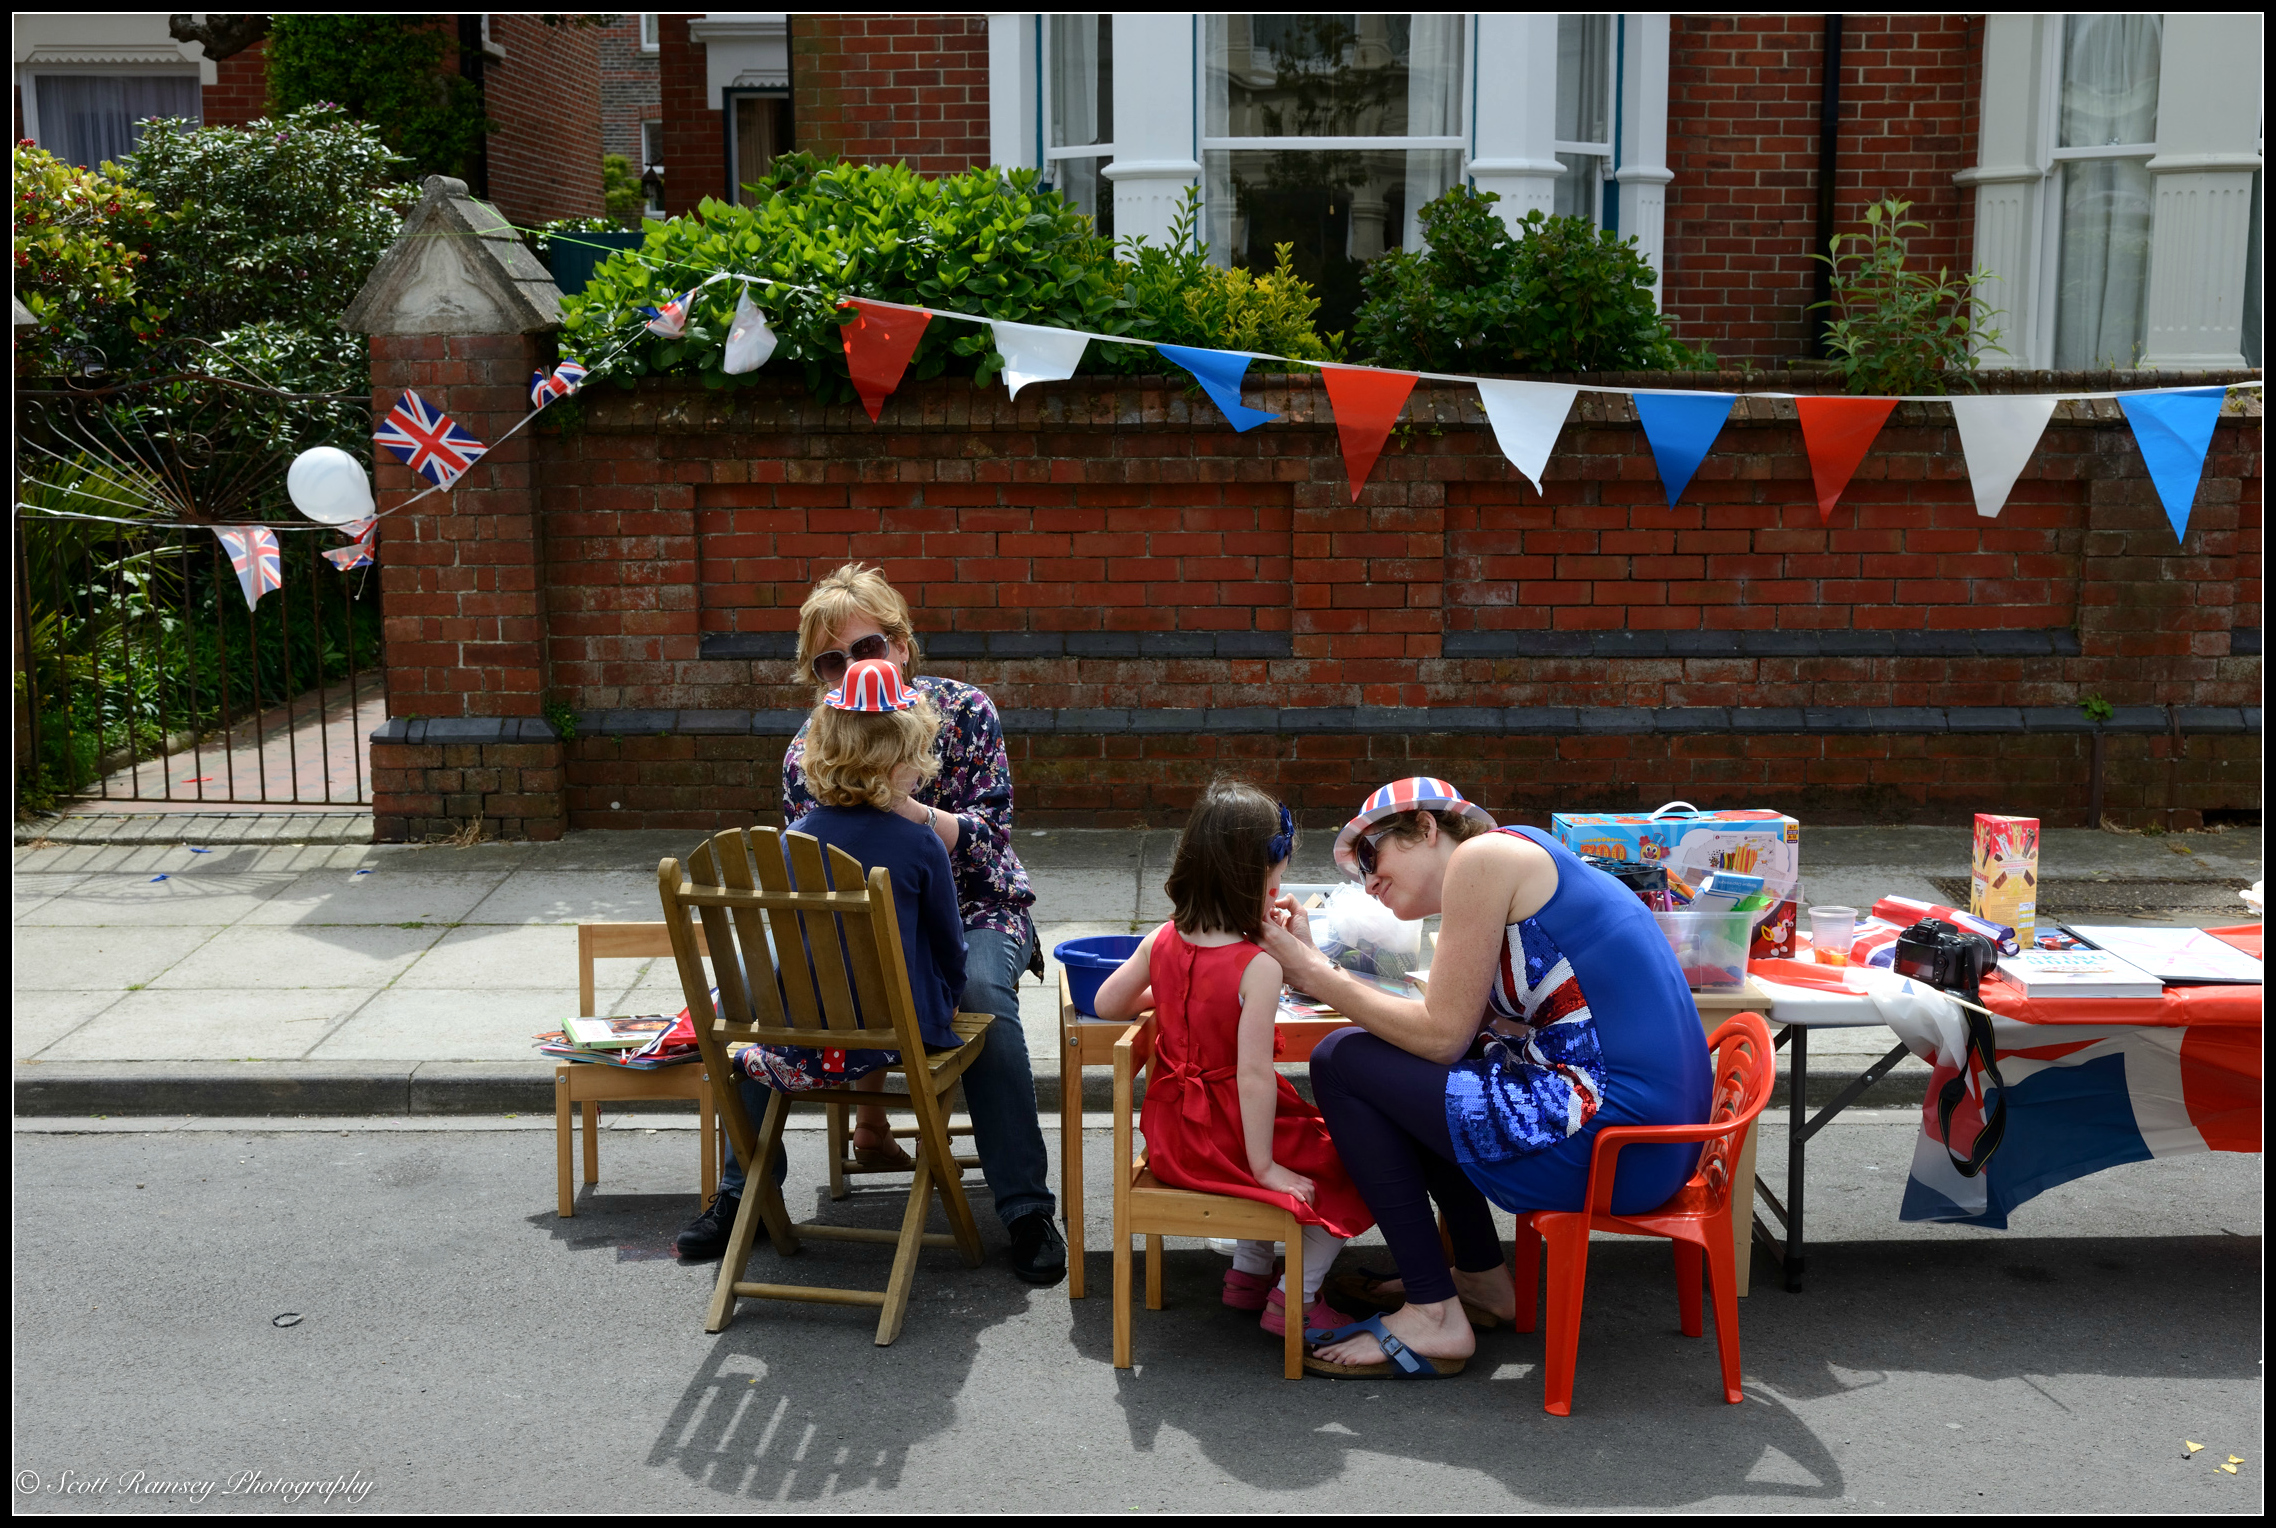 Children have their faces painted in Nettlecombe Avenue in Southsea, Portsmouth during a VE Day70th  anniversarystreet party. © Scott Ramsey Photography.